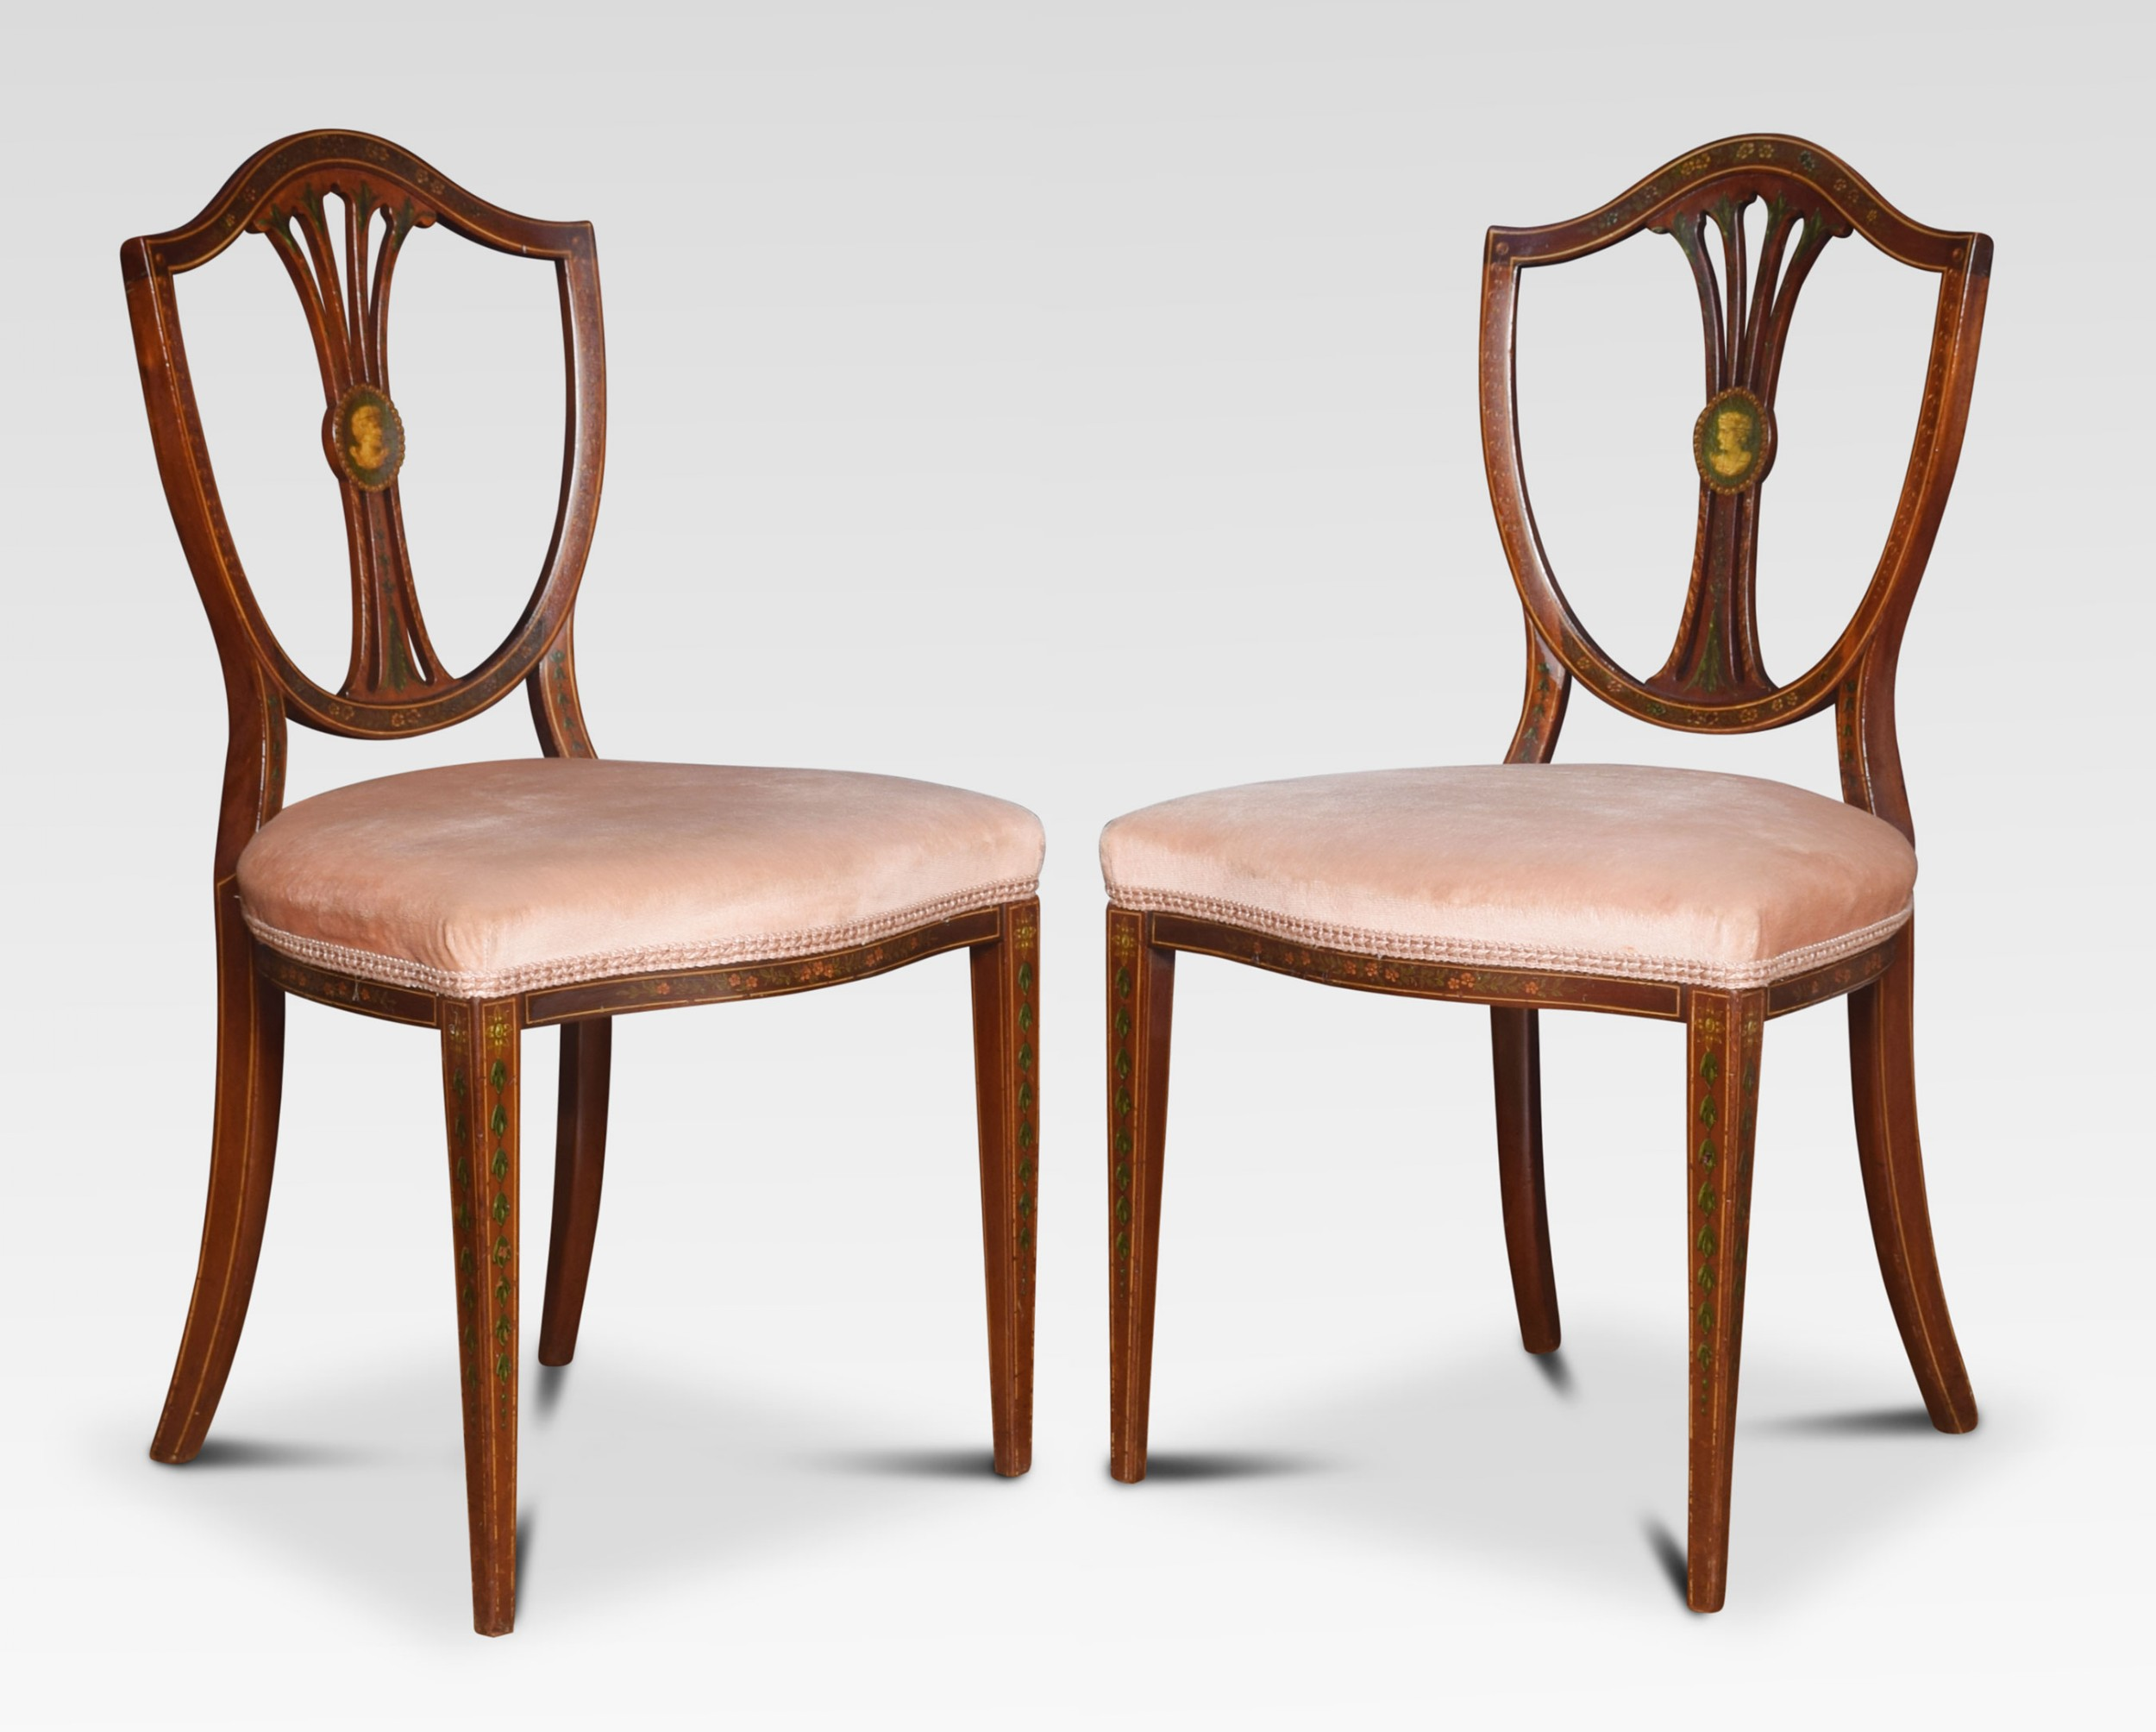 pair of 19th century side chairs by edwards and roberts